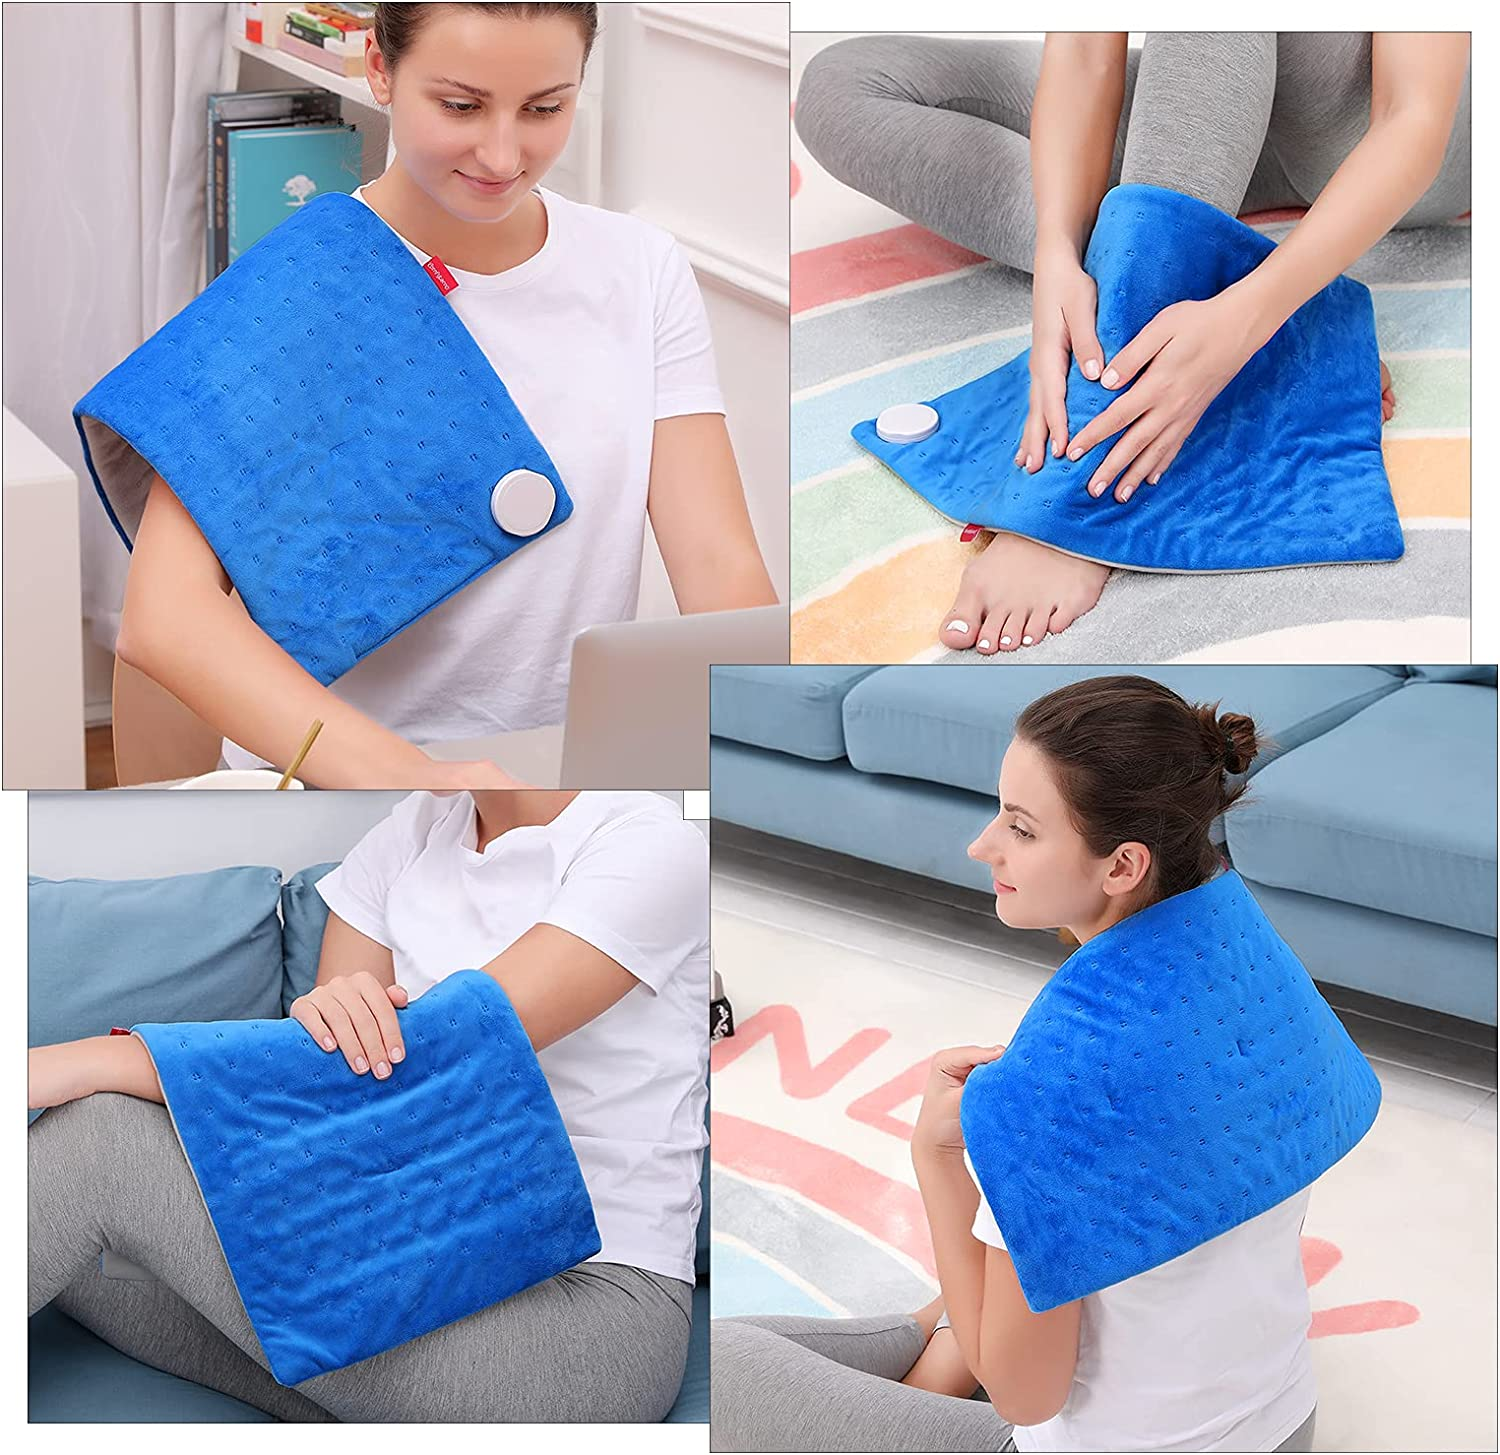 Heating Pad, Comfytemp Electric Heating Pad for Back Pain Relief, 12 x 24In XL Soft Heat Pad - 9 Heat Levels, 11 Timers with Countdown, Stay on, Backlight for Neck, Shoulders, Cramps, Machine Washable